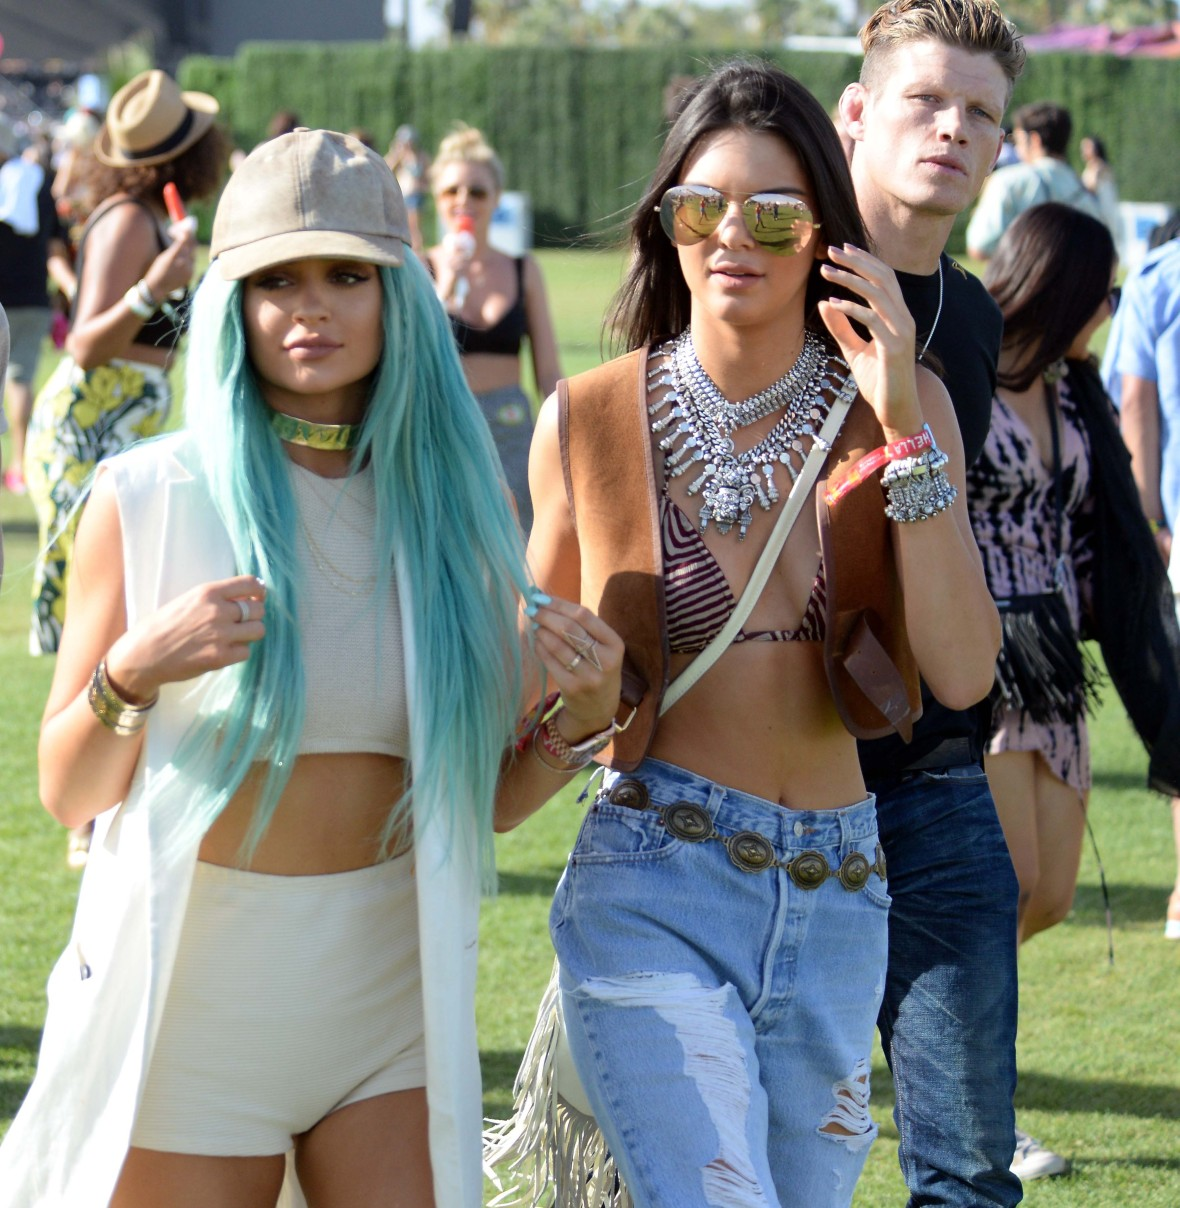 kendall and kylie jenner at coachella